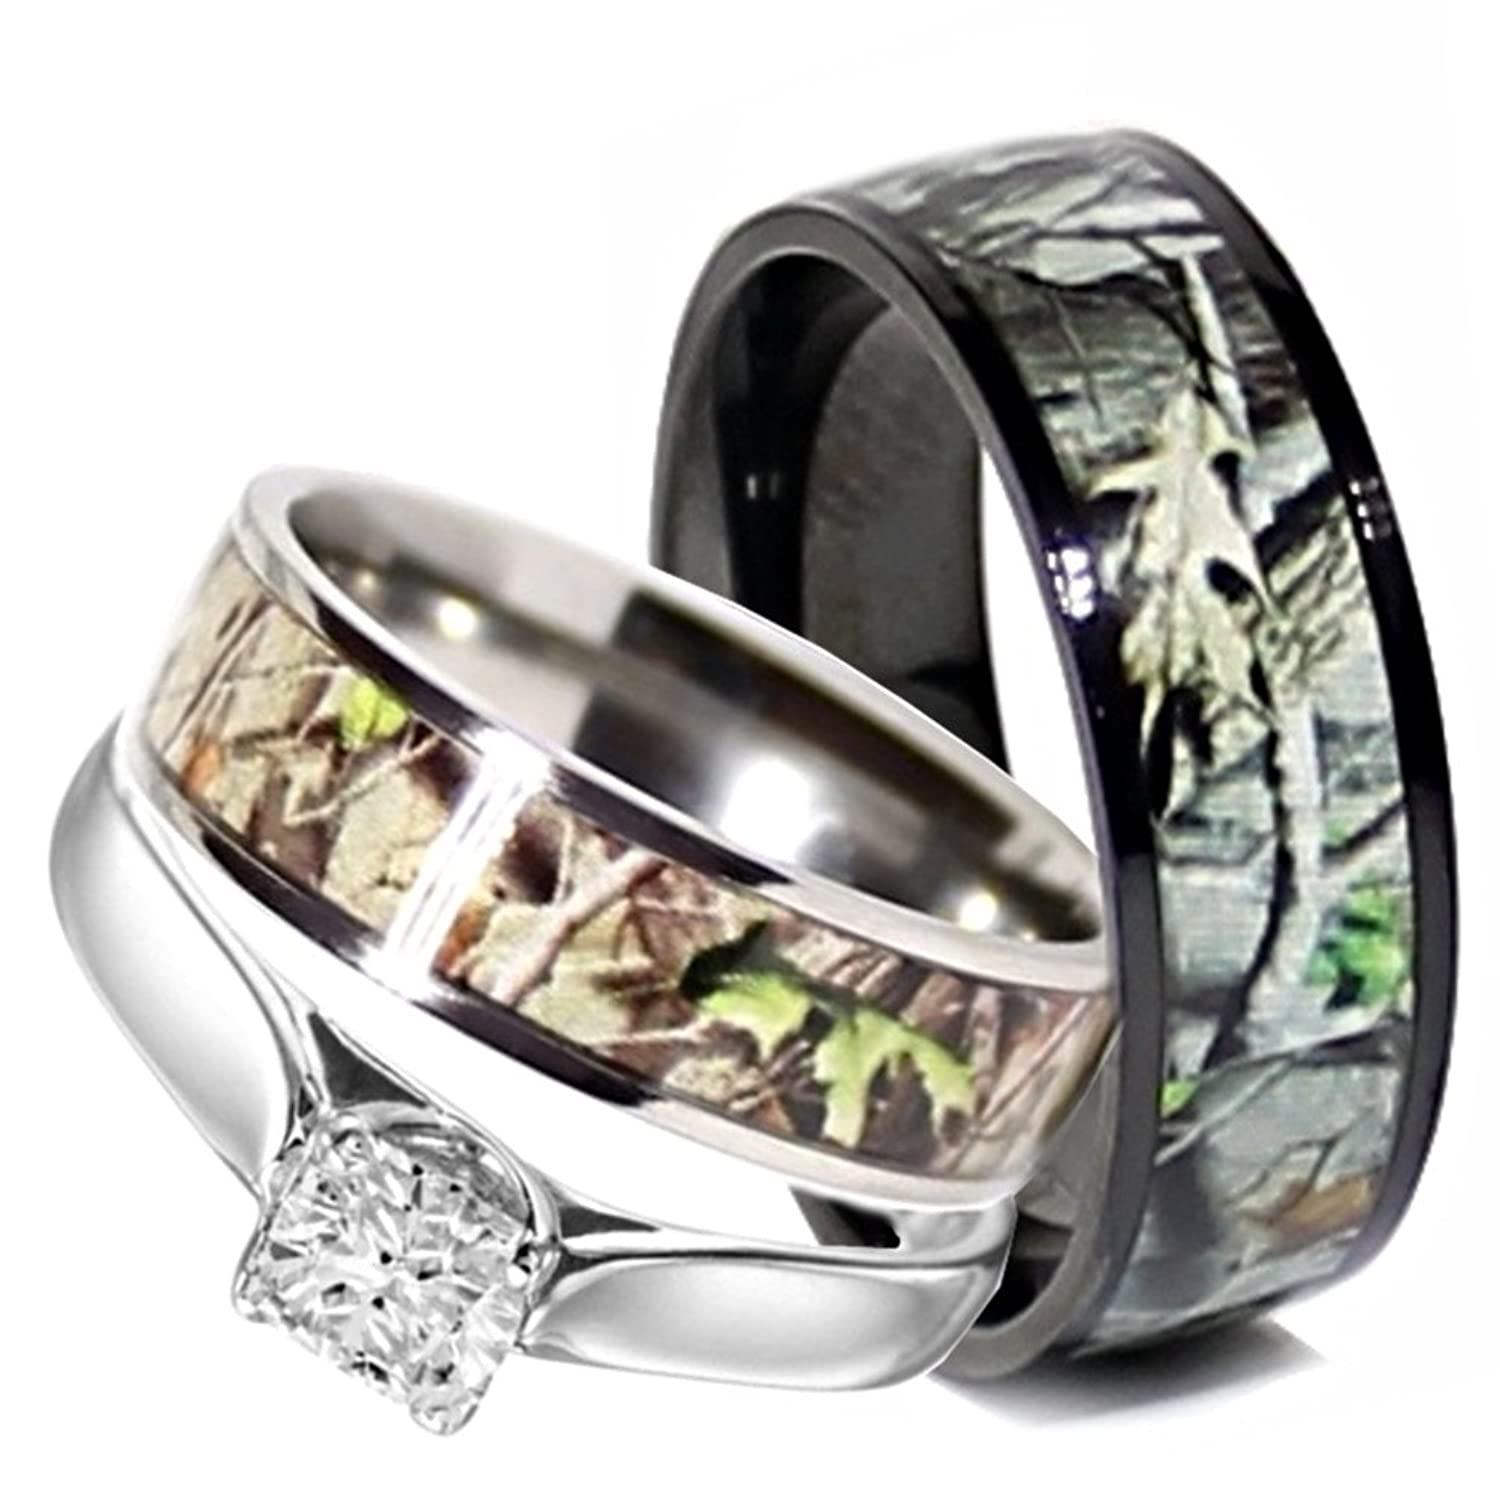 Superbe Camo Wedding Rings Set His And Hers 3 Rings Set, Sterling Silver And  Titanium (Size Men 10; Women 10)|Amazon.com